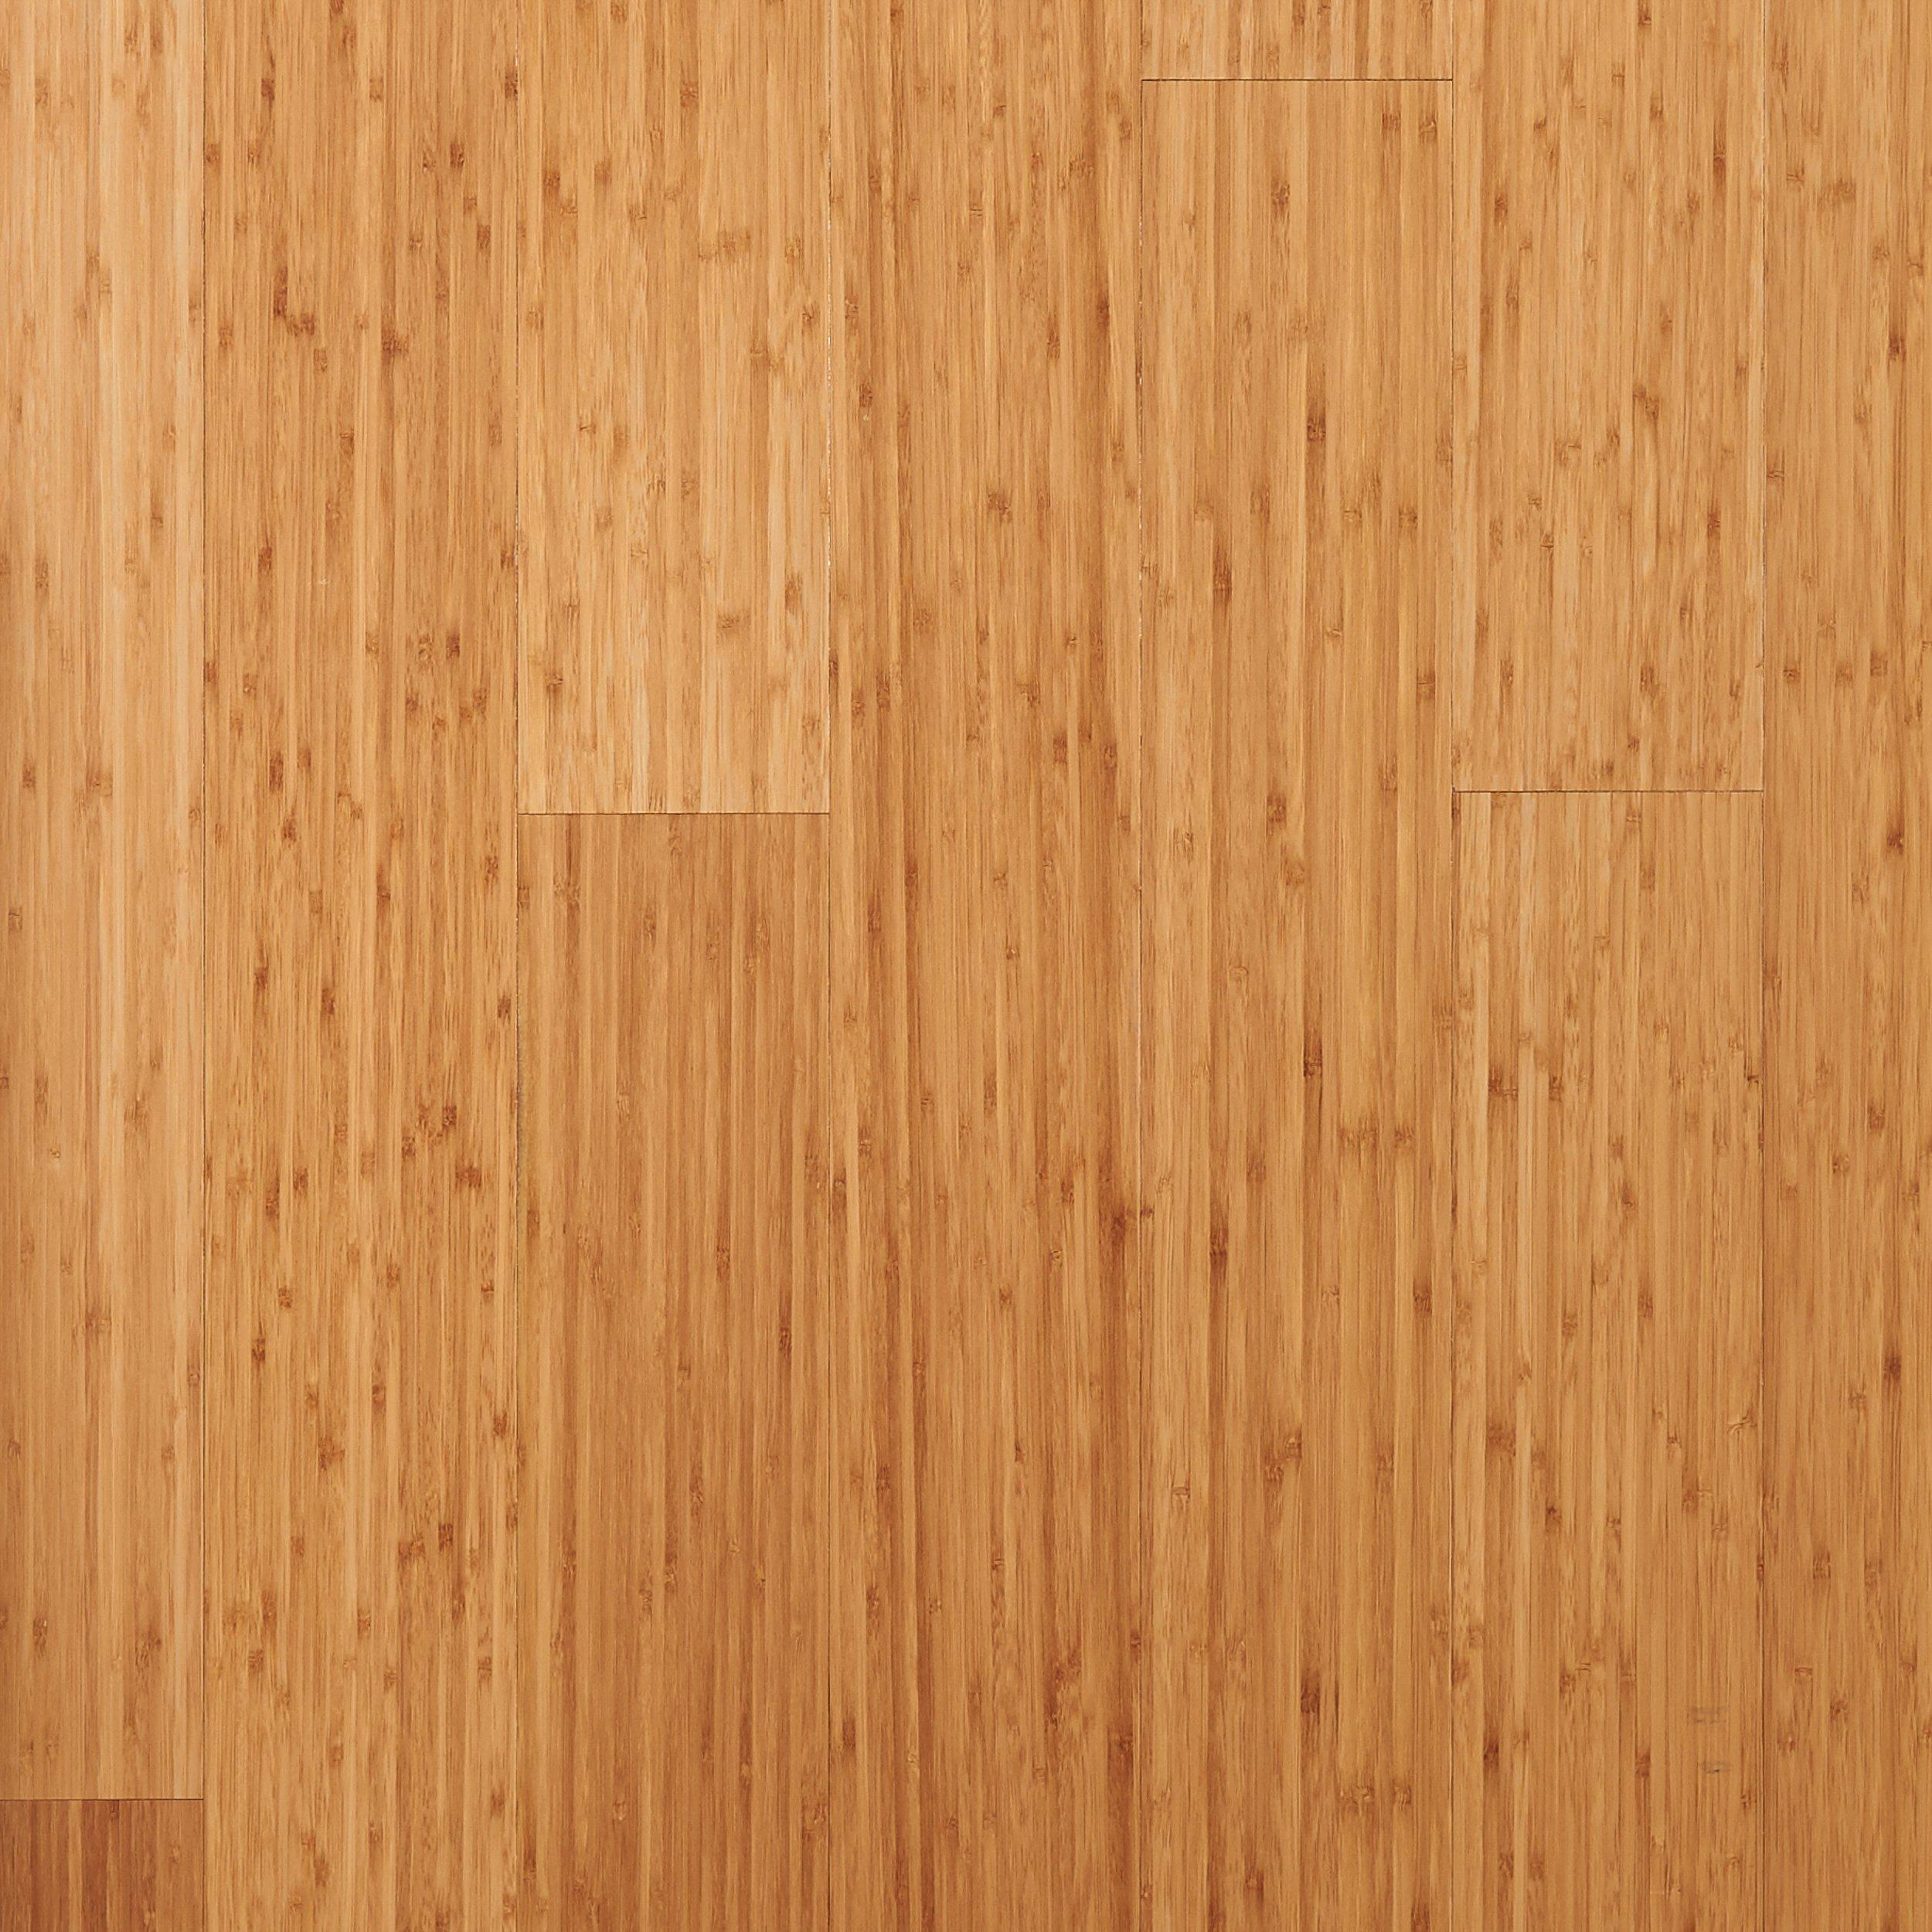 bamboo flooring carbonized vertical locking engineered bamboo UAJDNNY